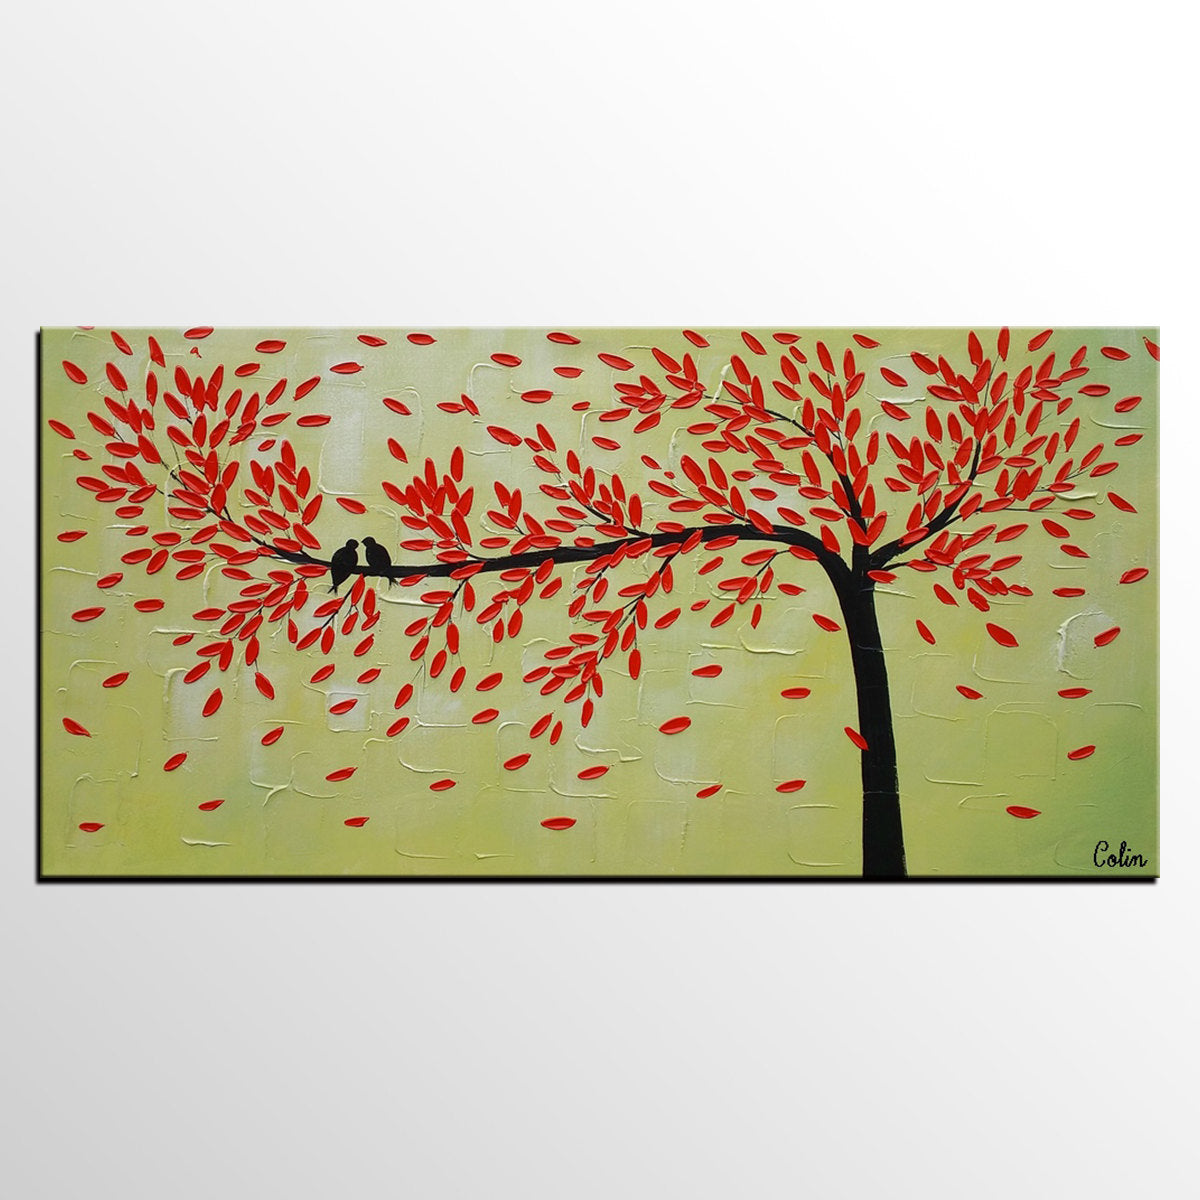 Singing Birds Painting, Love Birds Painting, Abstract Painting, Wedding Gift